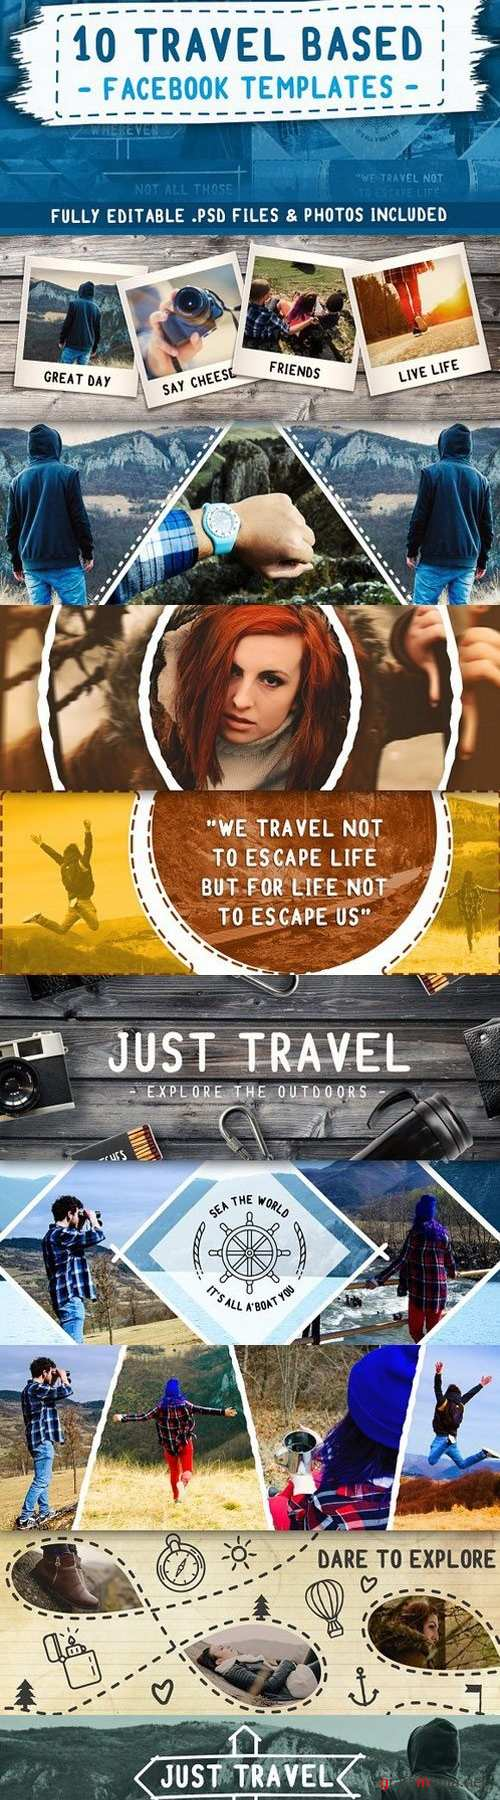 Travel Based PSD Facebook Templates 1546000